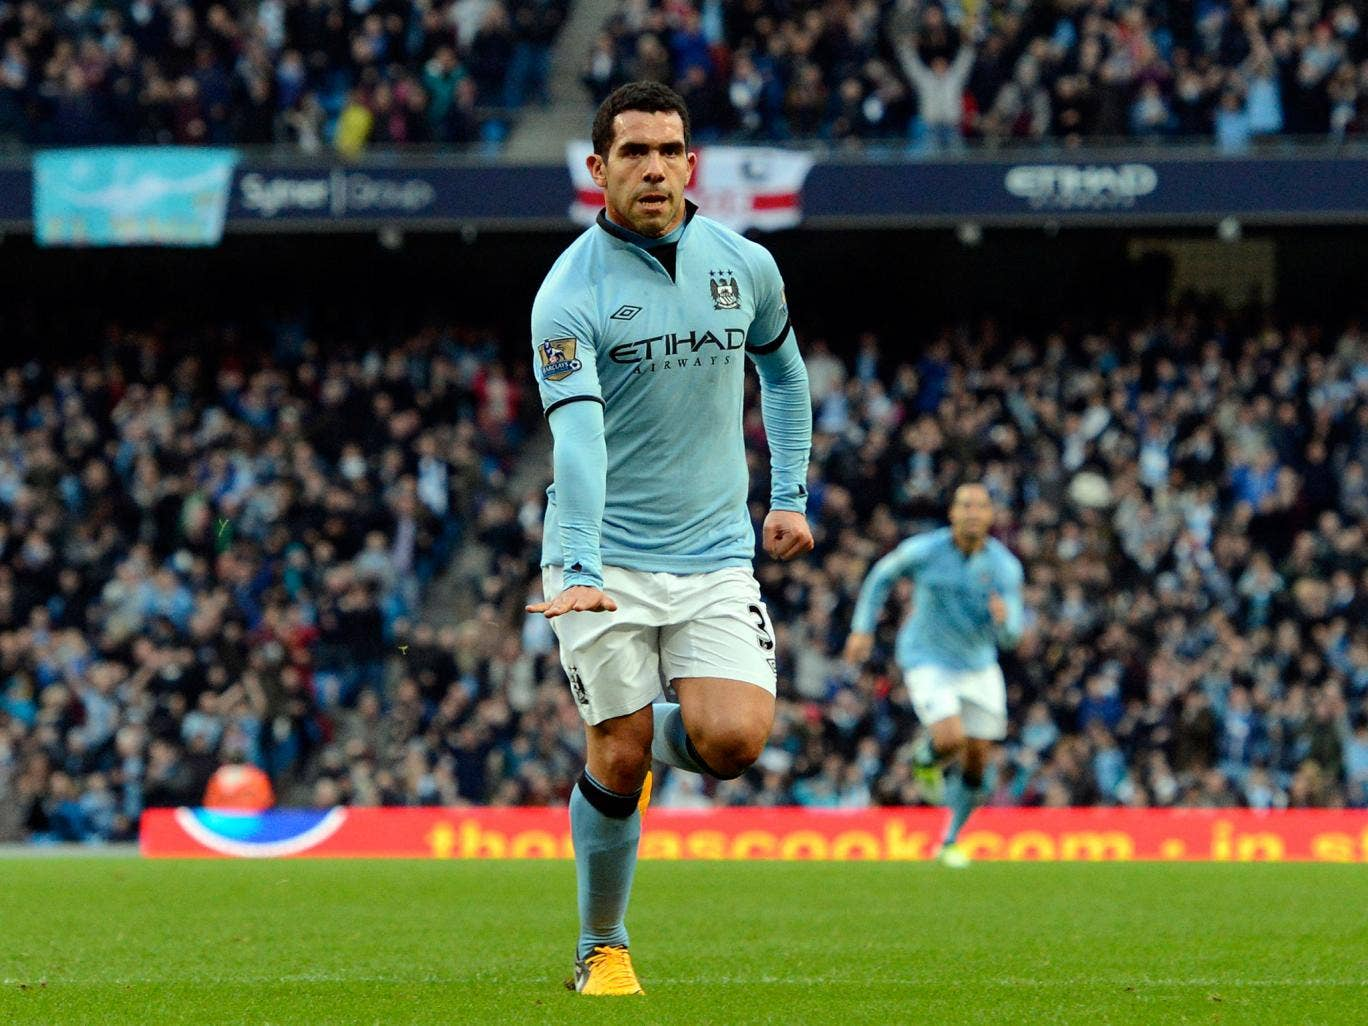 Manchester City's Argentinian striker Carlos Tevez celebrates scoring from a free kick